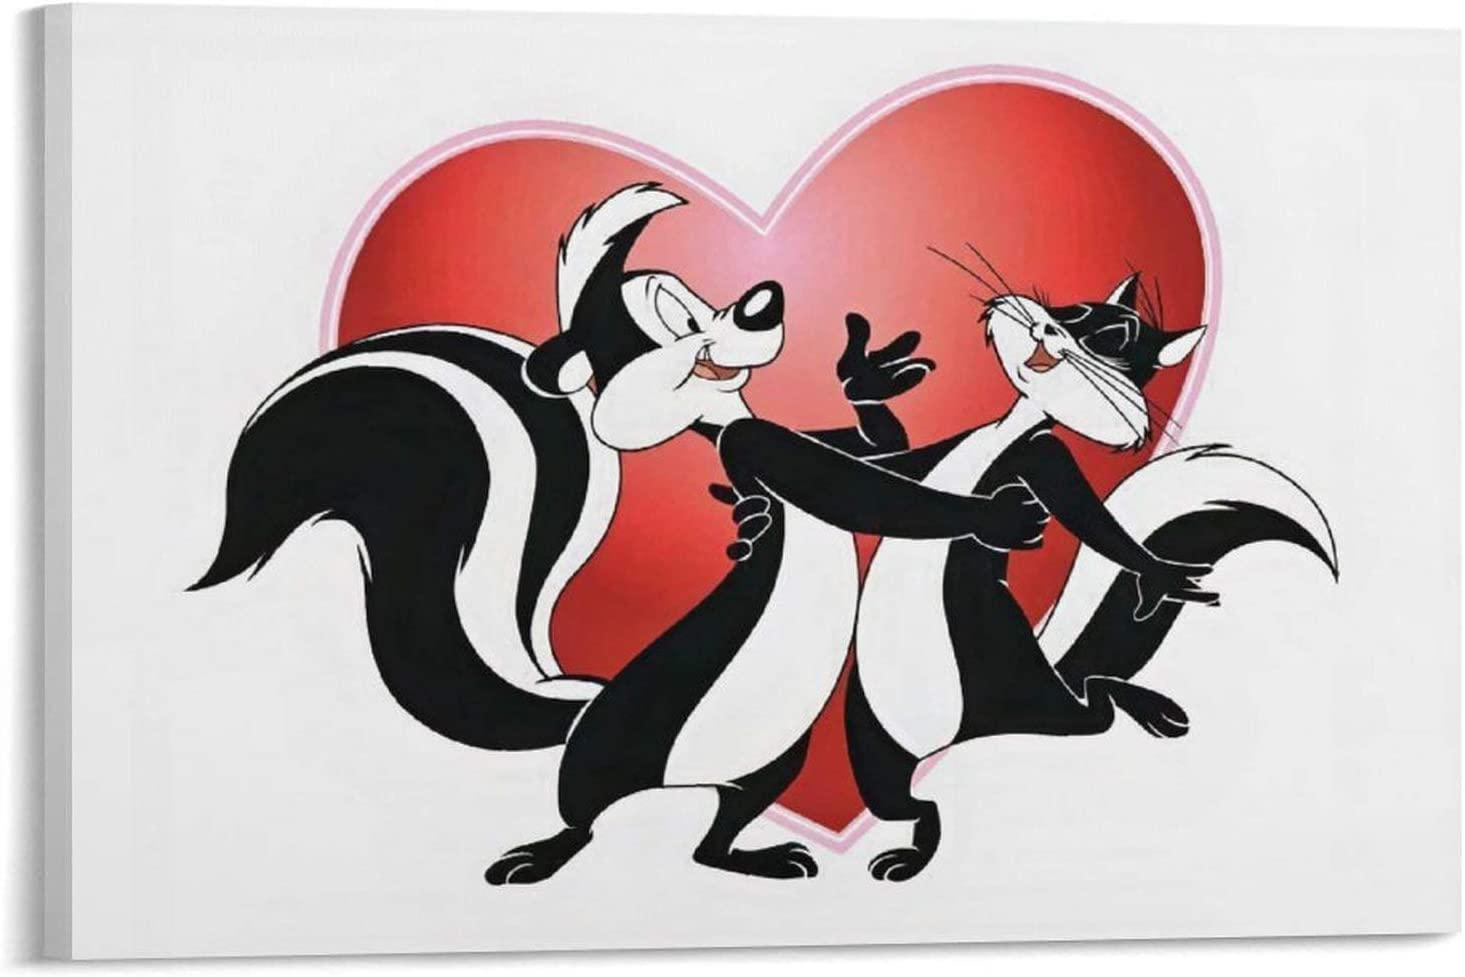 QIUPING Pepe Le Pew with Hearts Poster Artworks Picture Print Poster Wall Art Painting Canvas Gift Decor Home Posters Decorative 12×18inch(30×45cm)